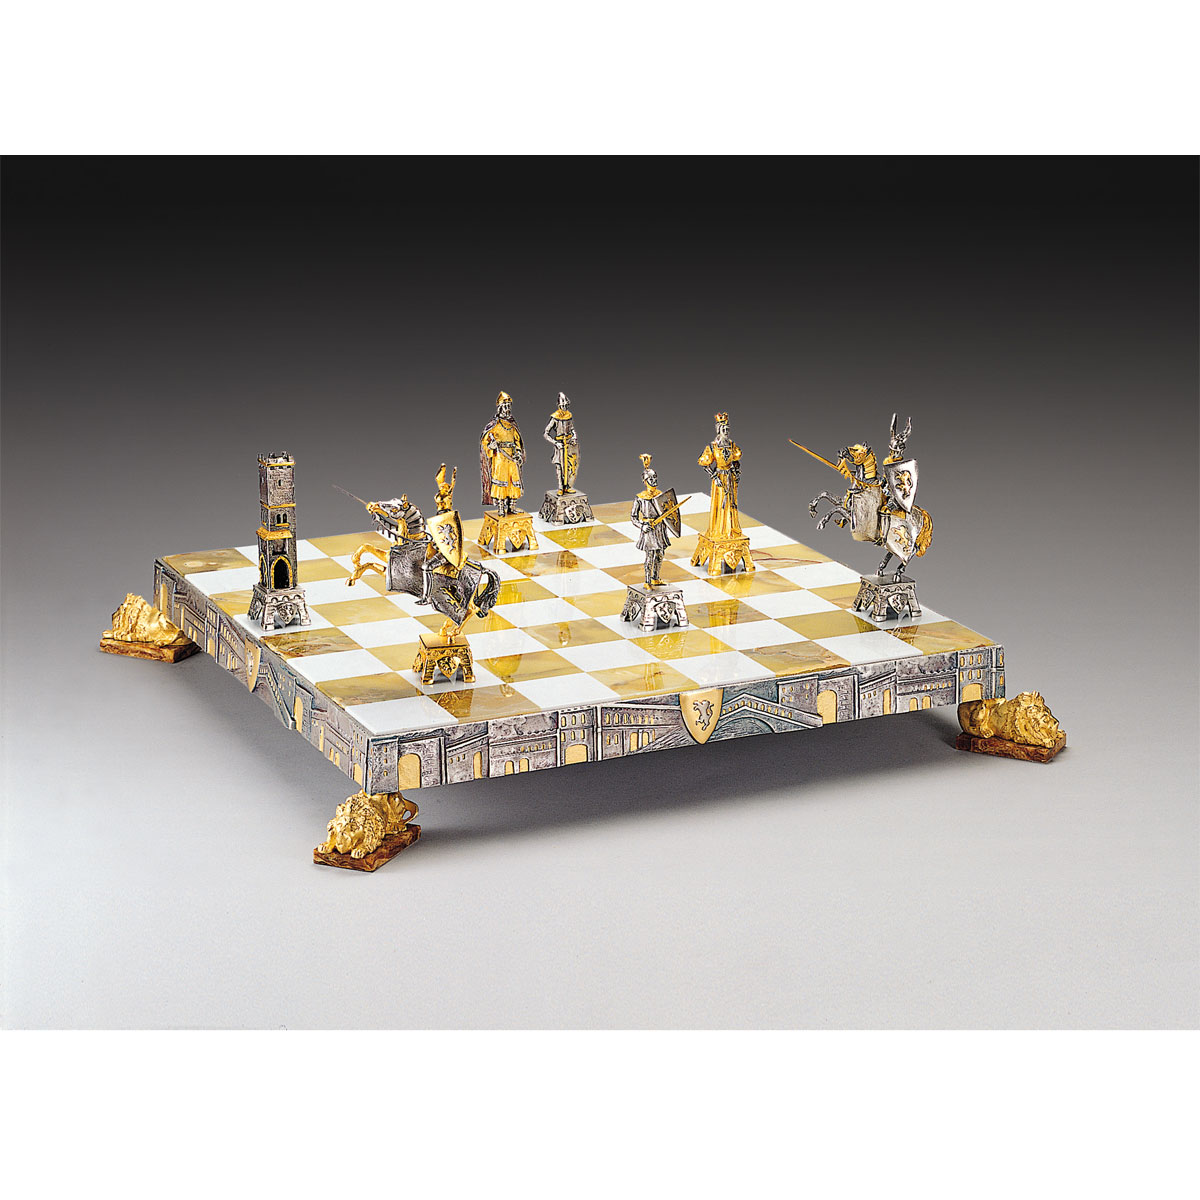 Gold Chess Pieces Veneziani Medioevali Medieval Venice Gold Silver Themed Chess Set